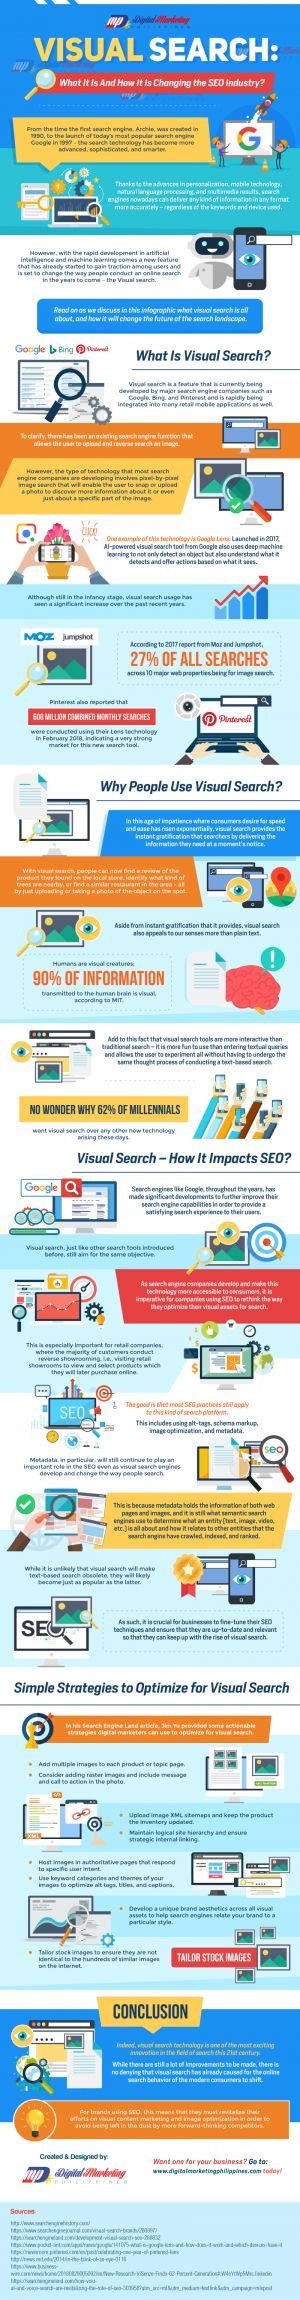 Visual Search: What It Is and How It Is Changing the SEO Industry?